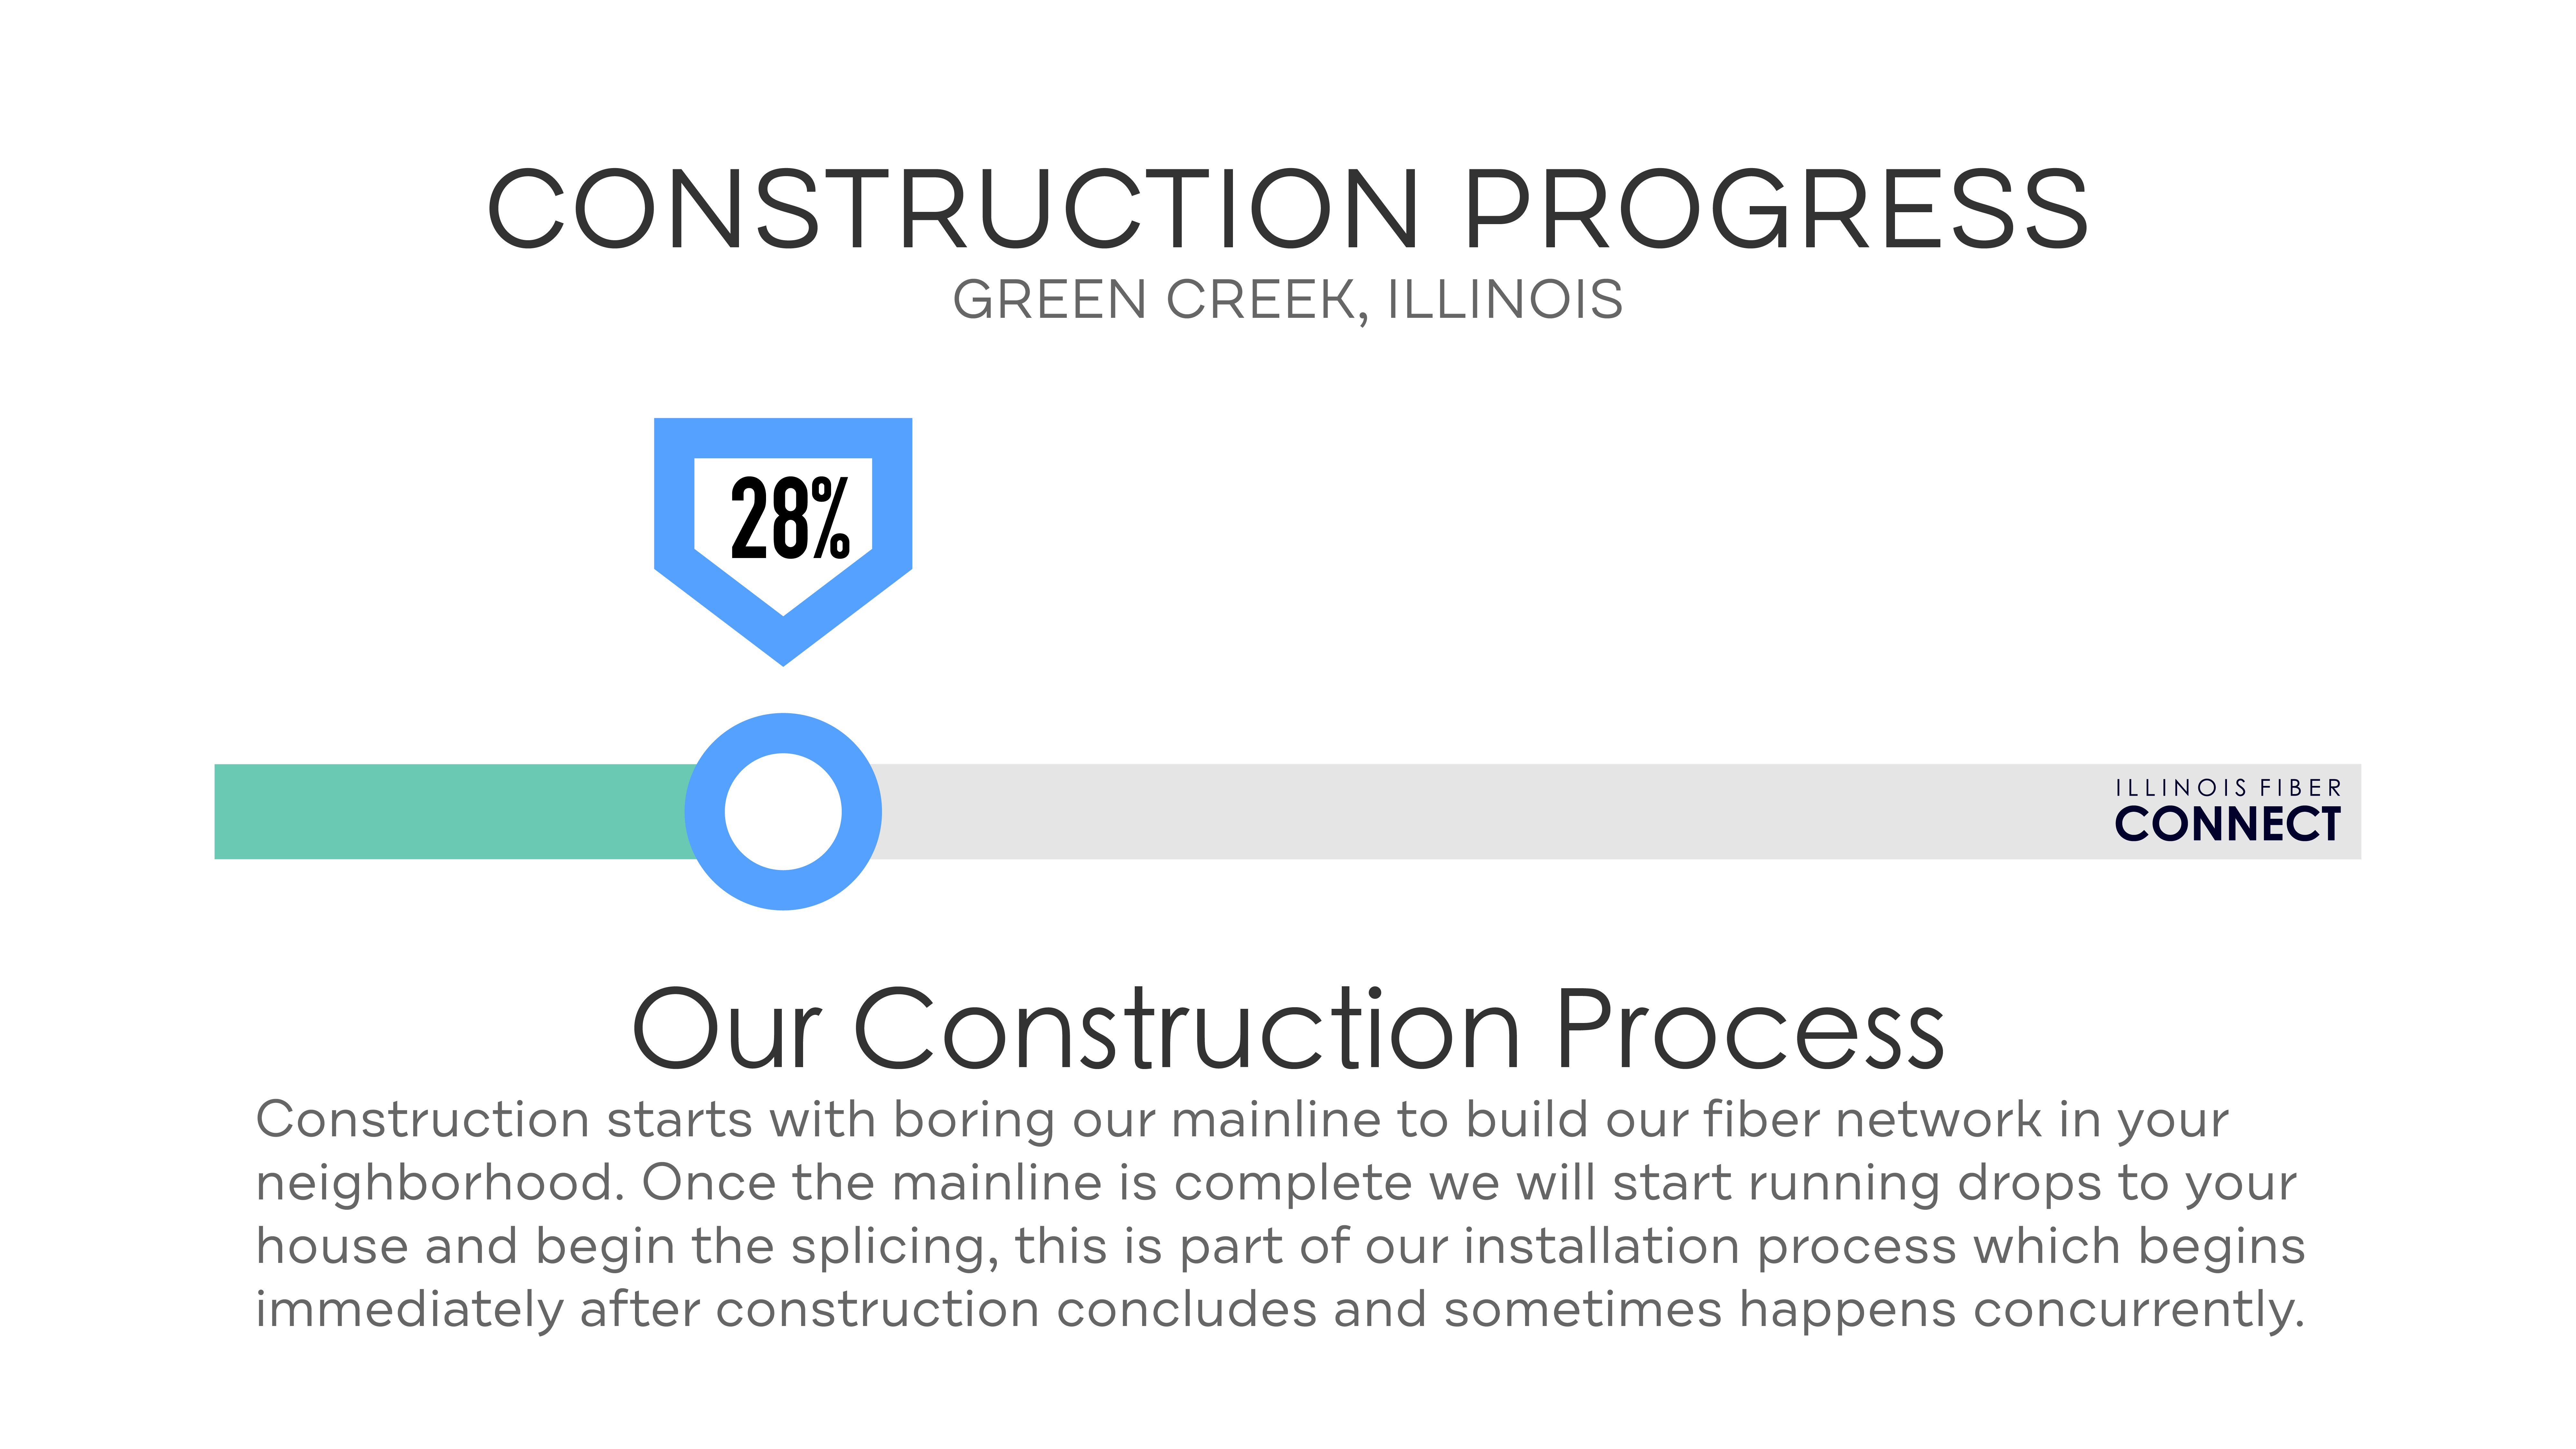 Green Creek Construction Update